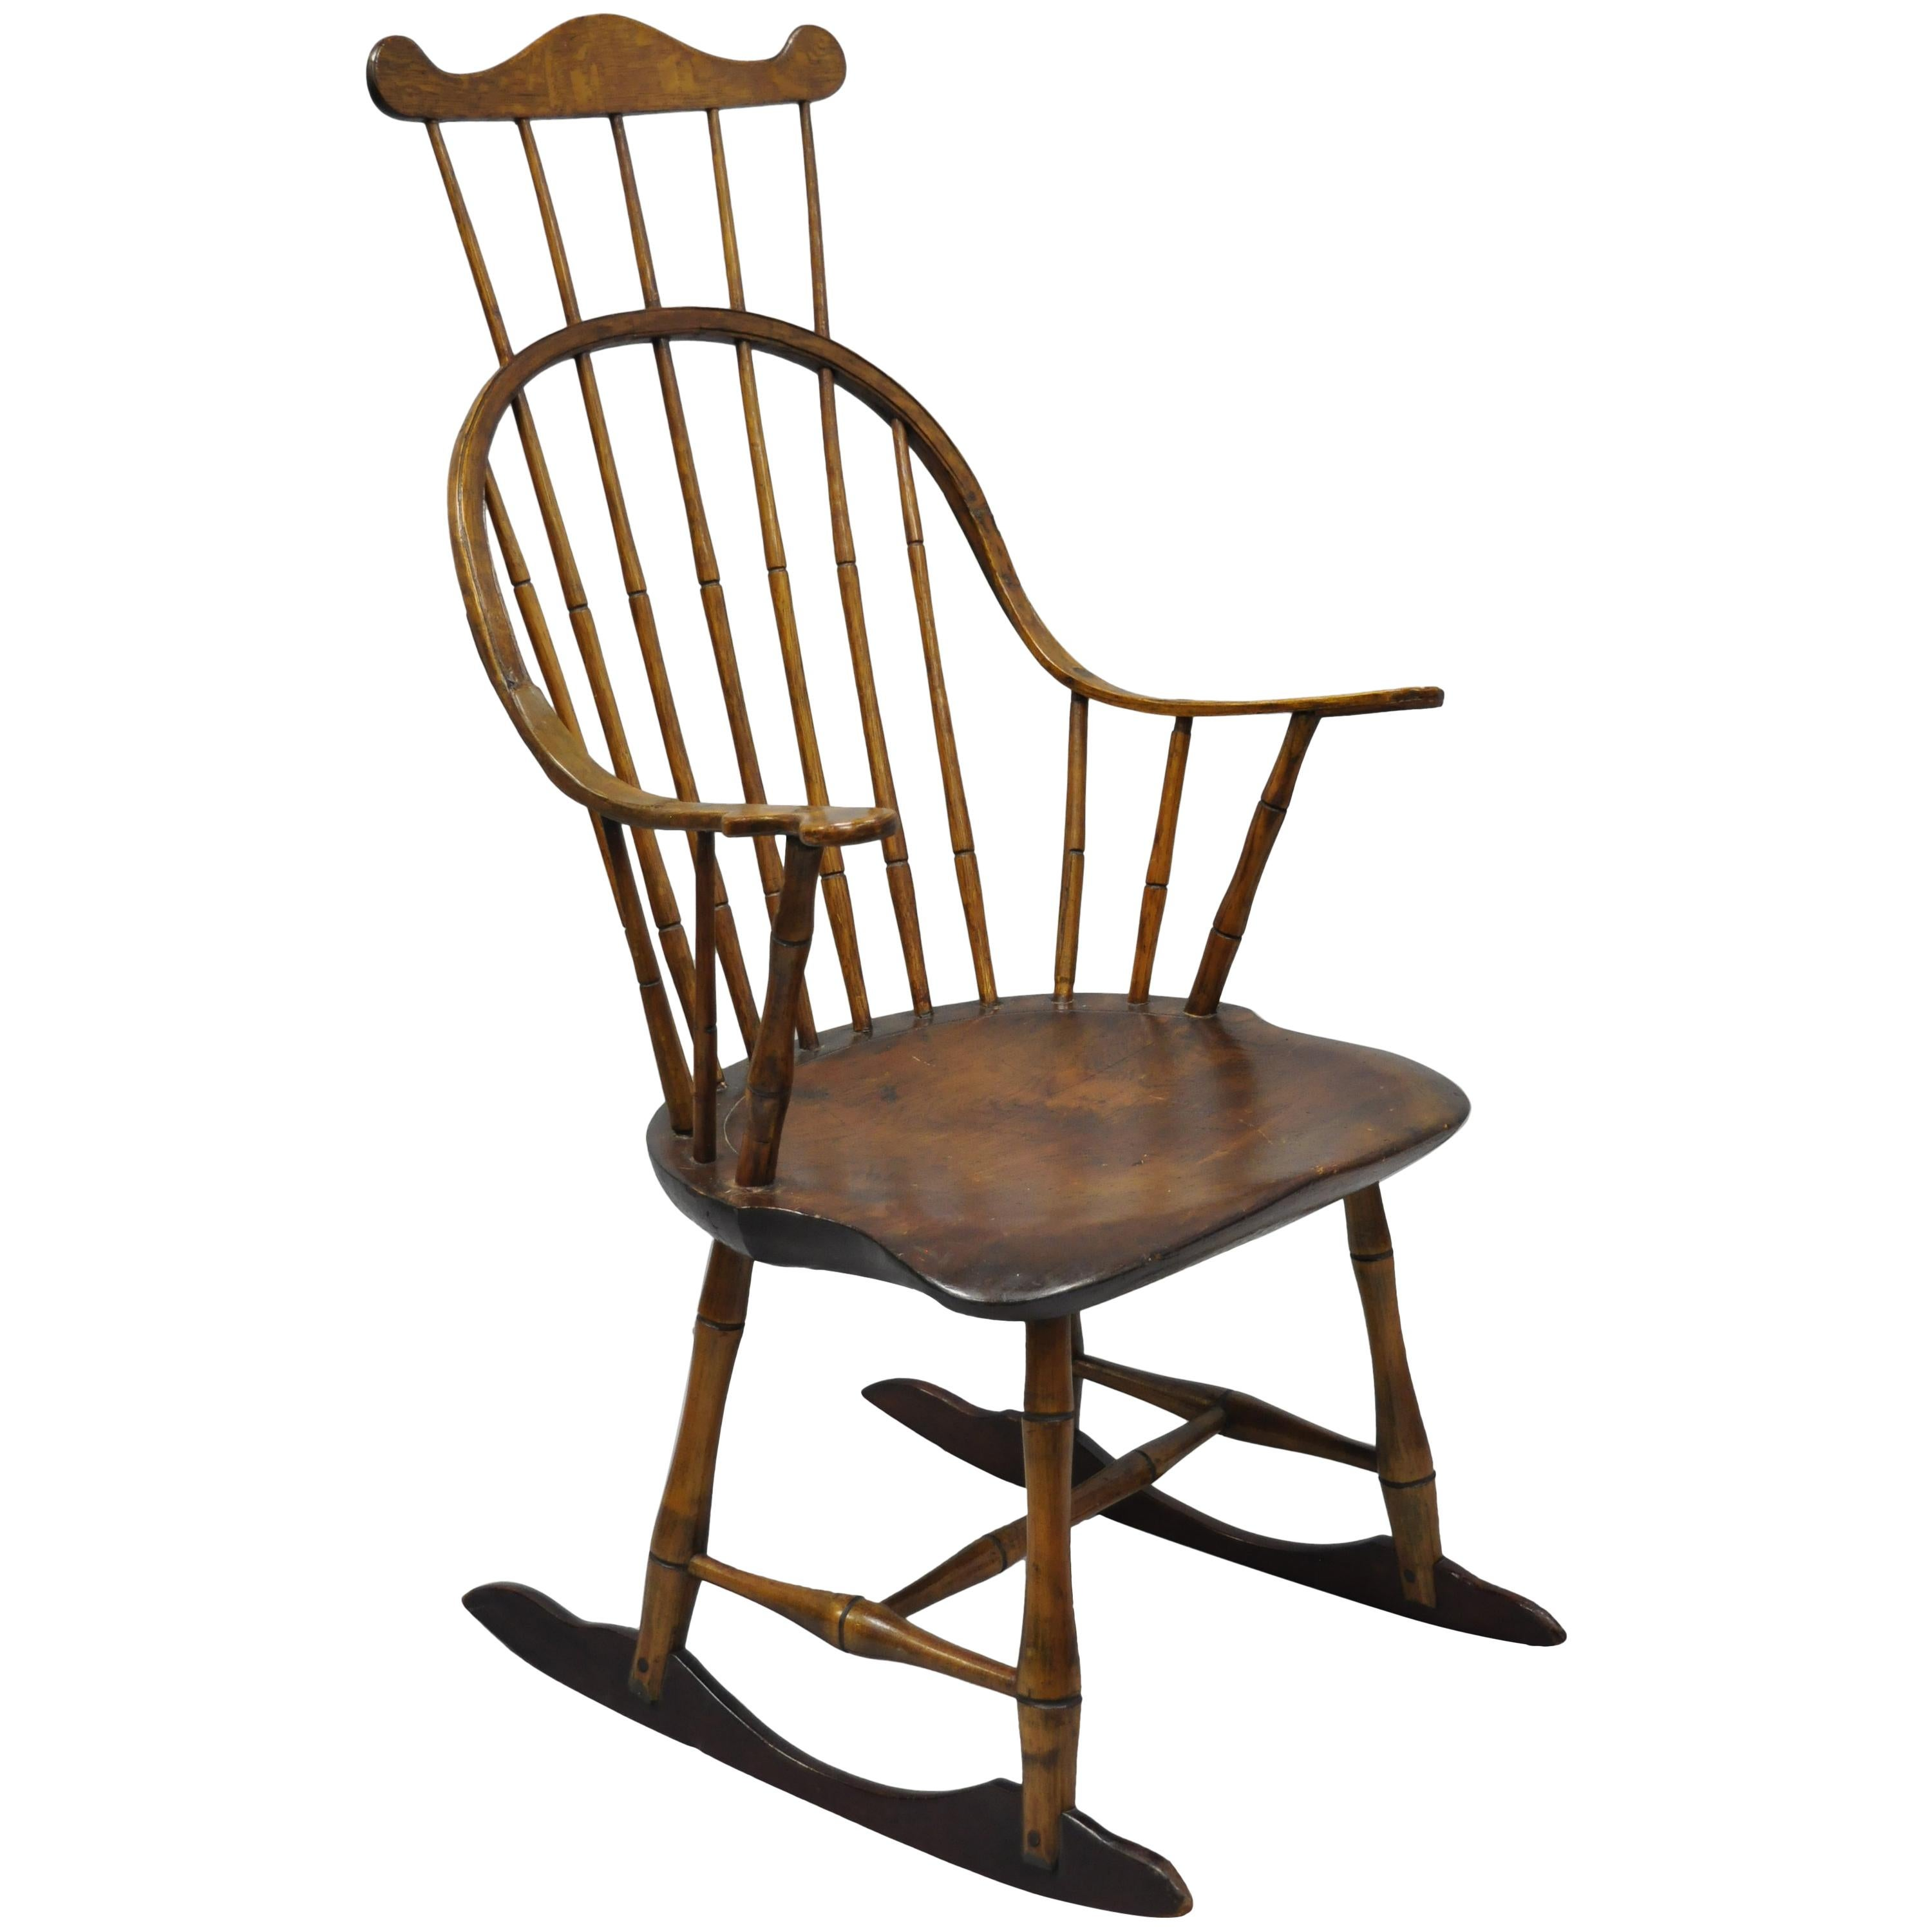 Ordinaire Antique Bow Back Windsor Oak And Pine Wood Rocking Chair Colonial Rocker  For Sale